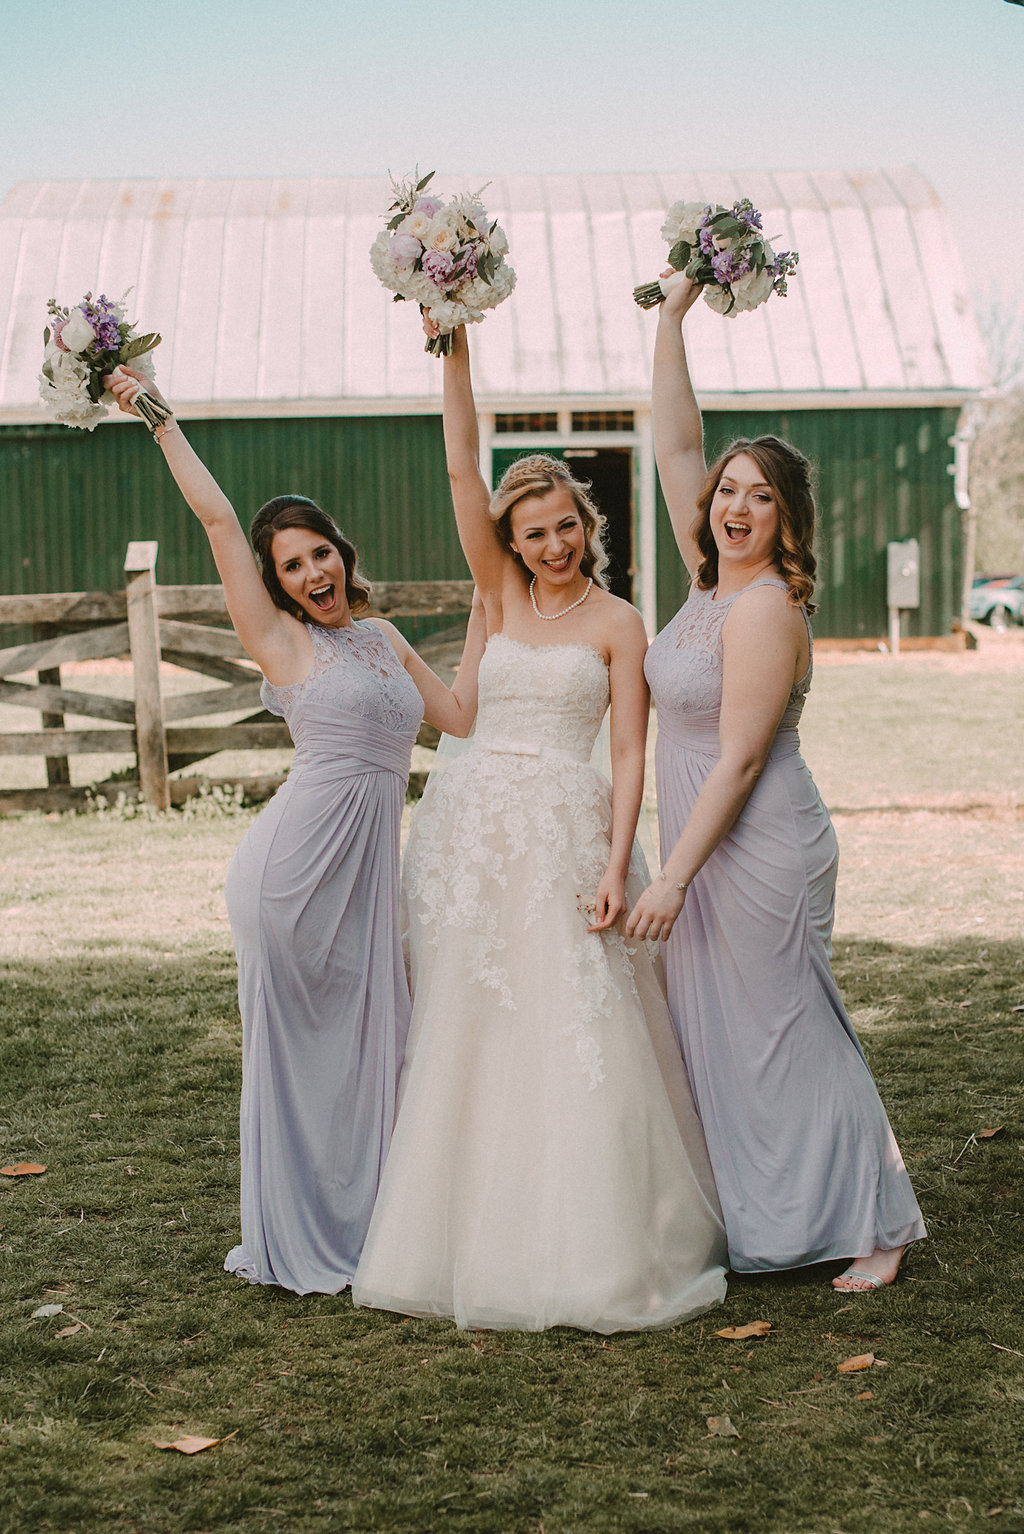 Bride and bridesmaids posing with bouquets